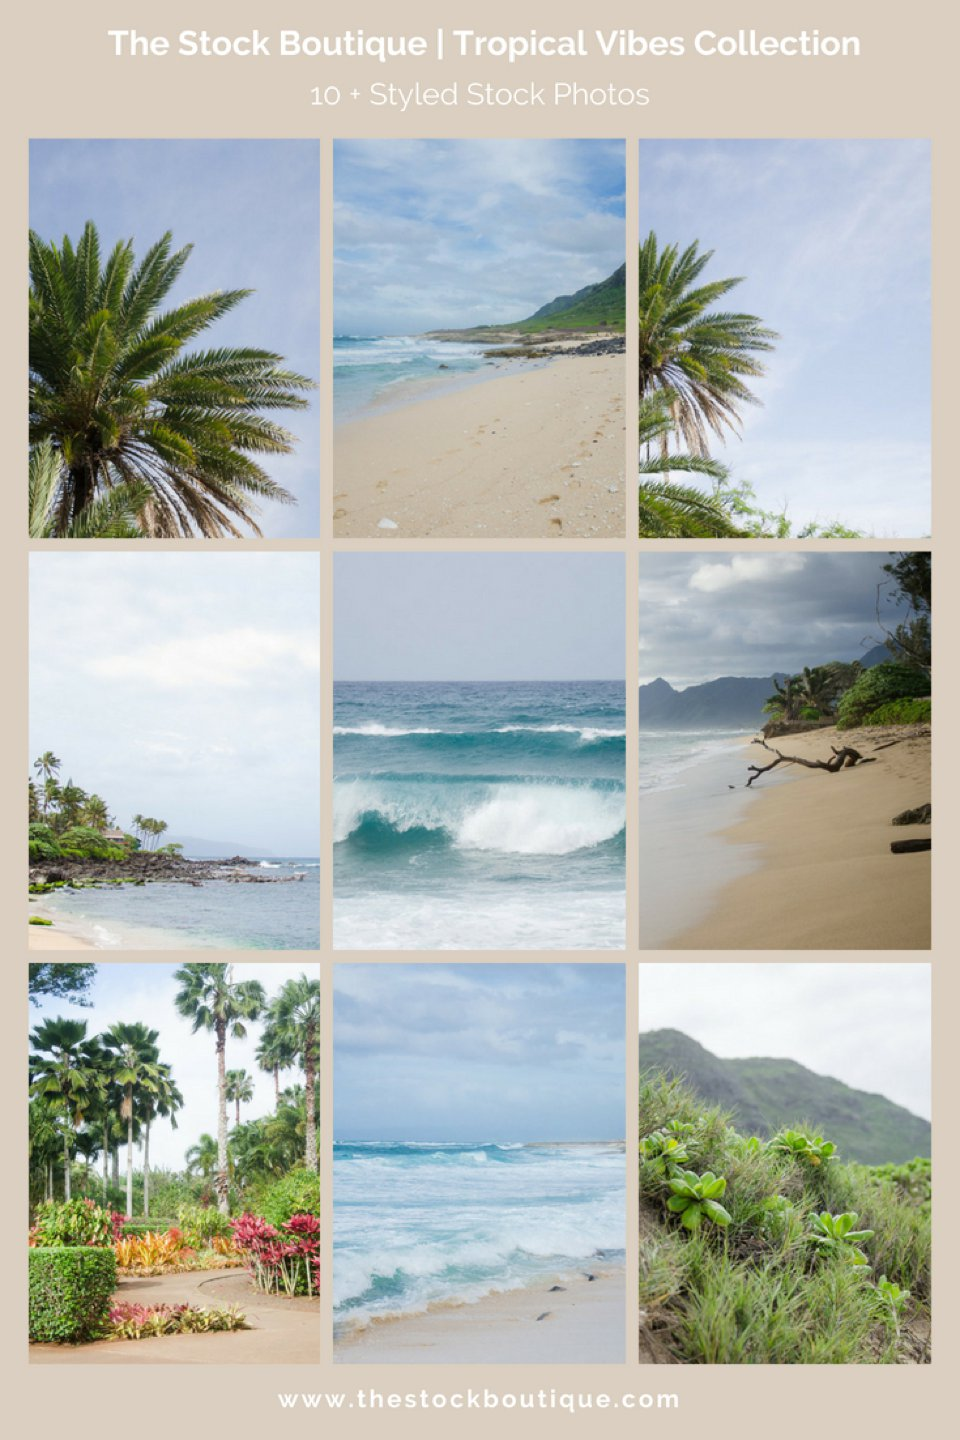 Tropical Vibes Stock Photography Collection. We giveaway a stock photo every month when you subscribe! www.thestockboutique.com   #stockphoto     #femaleentrepreneur     #smallbusiness